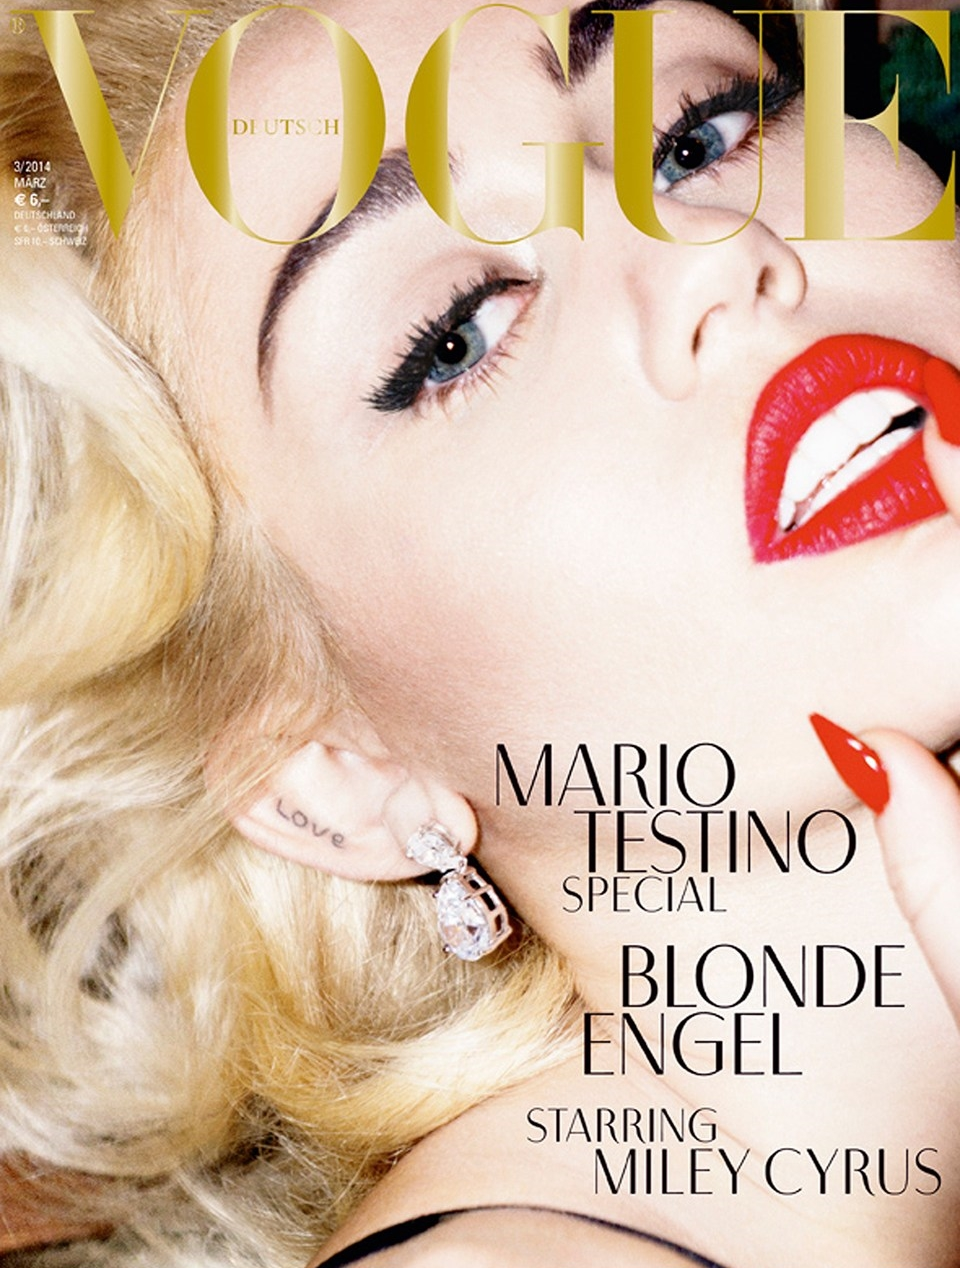 VOGUE-cover-Deutschland3_Miley-Cyrus_glamour_7feb14_Mario-Testino_b_960x1440.jpg